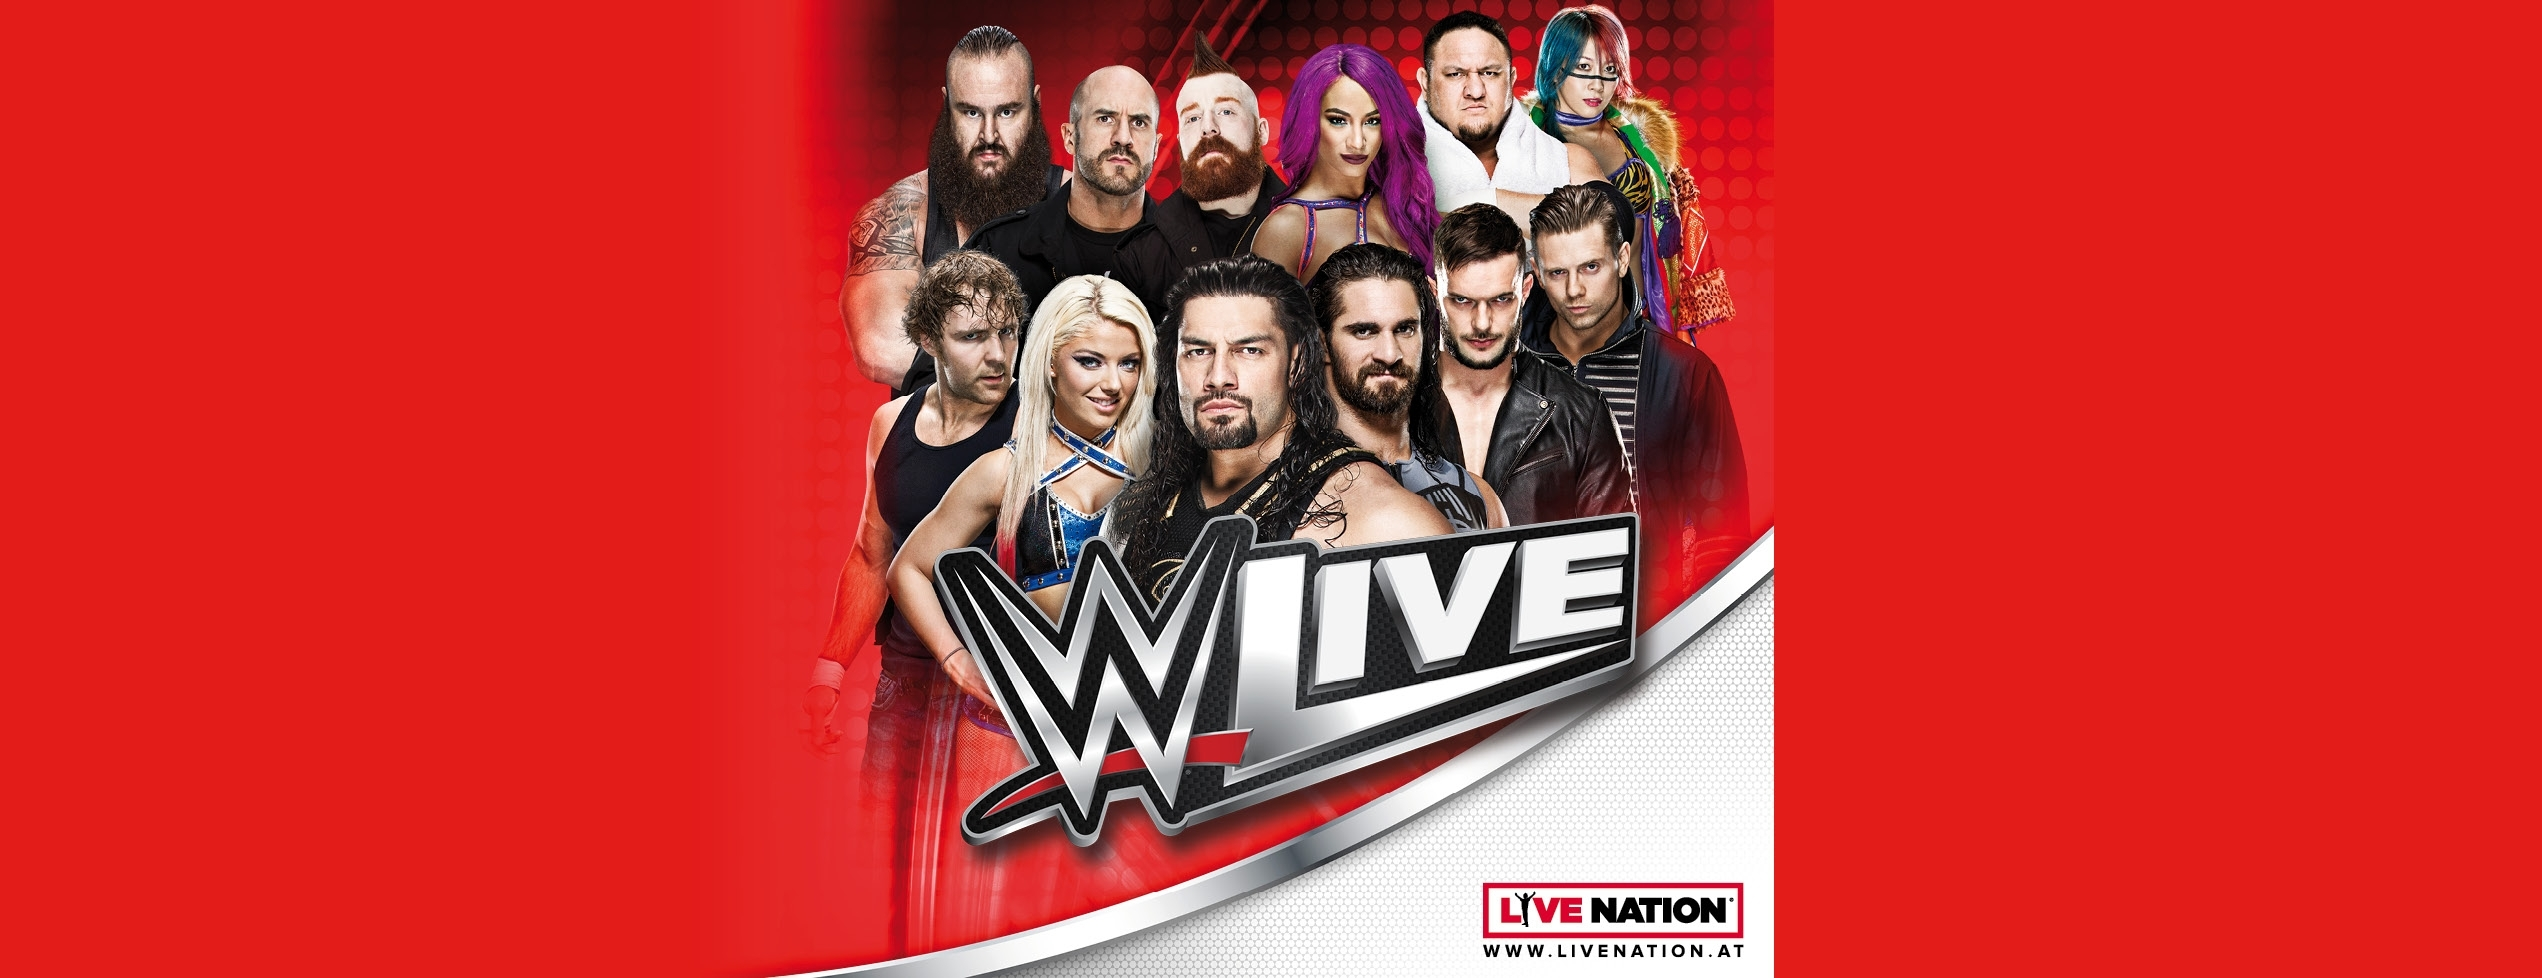 WWE Live 2018 © Live Nation Austria GmbH